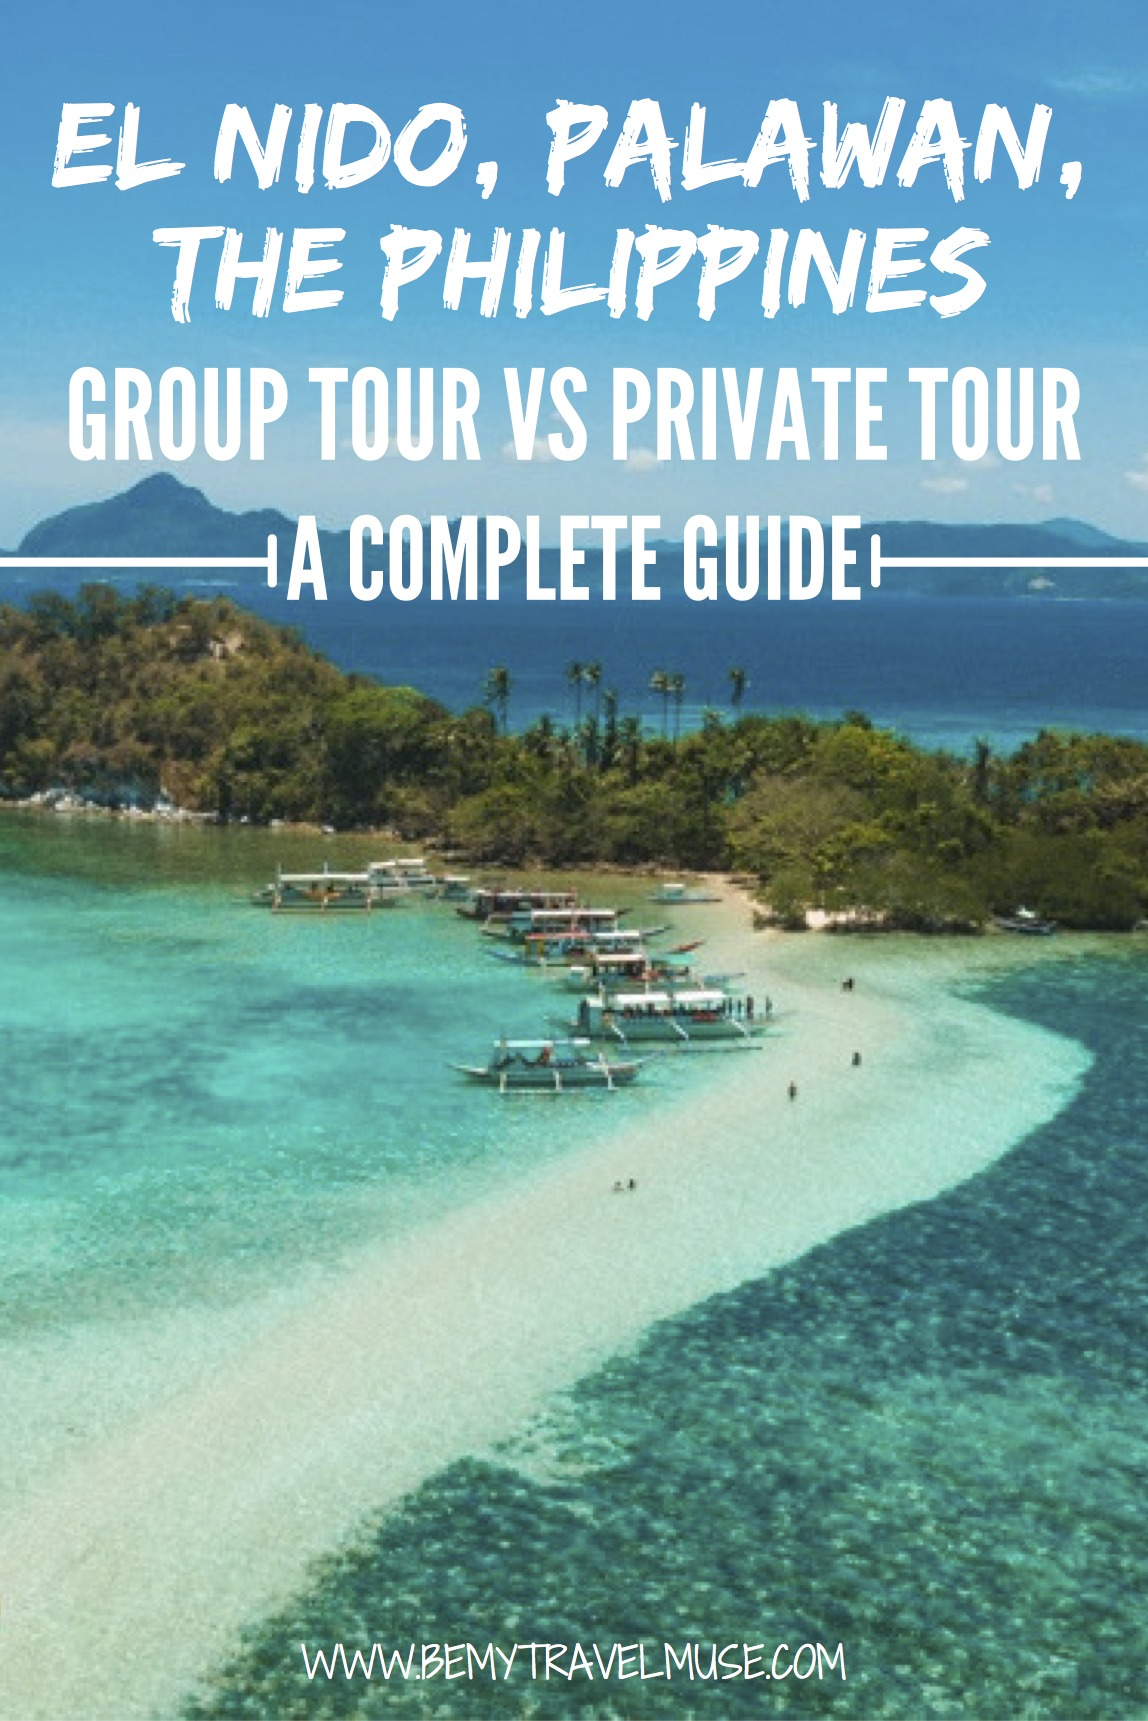 Should you go on a group tour or a private tour when island hopping in El Nido, Palawan, The Philippines? Here is an honest breakdown, complete guide and review of both options to help you choose the perfect way to see the islands of El Nido!